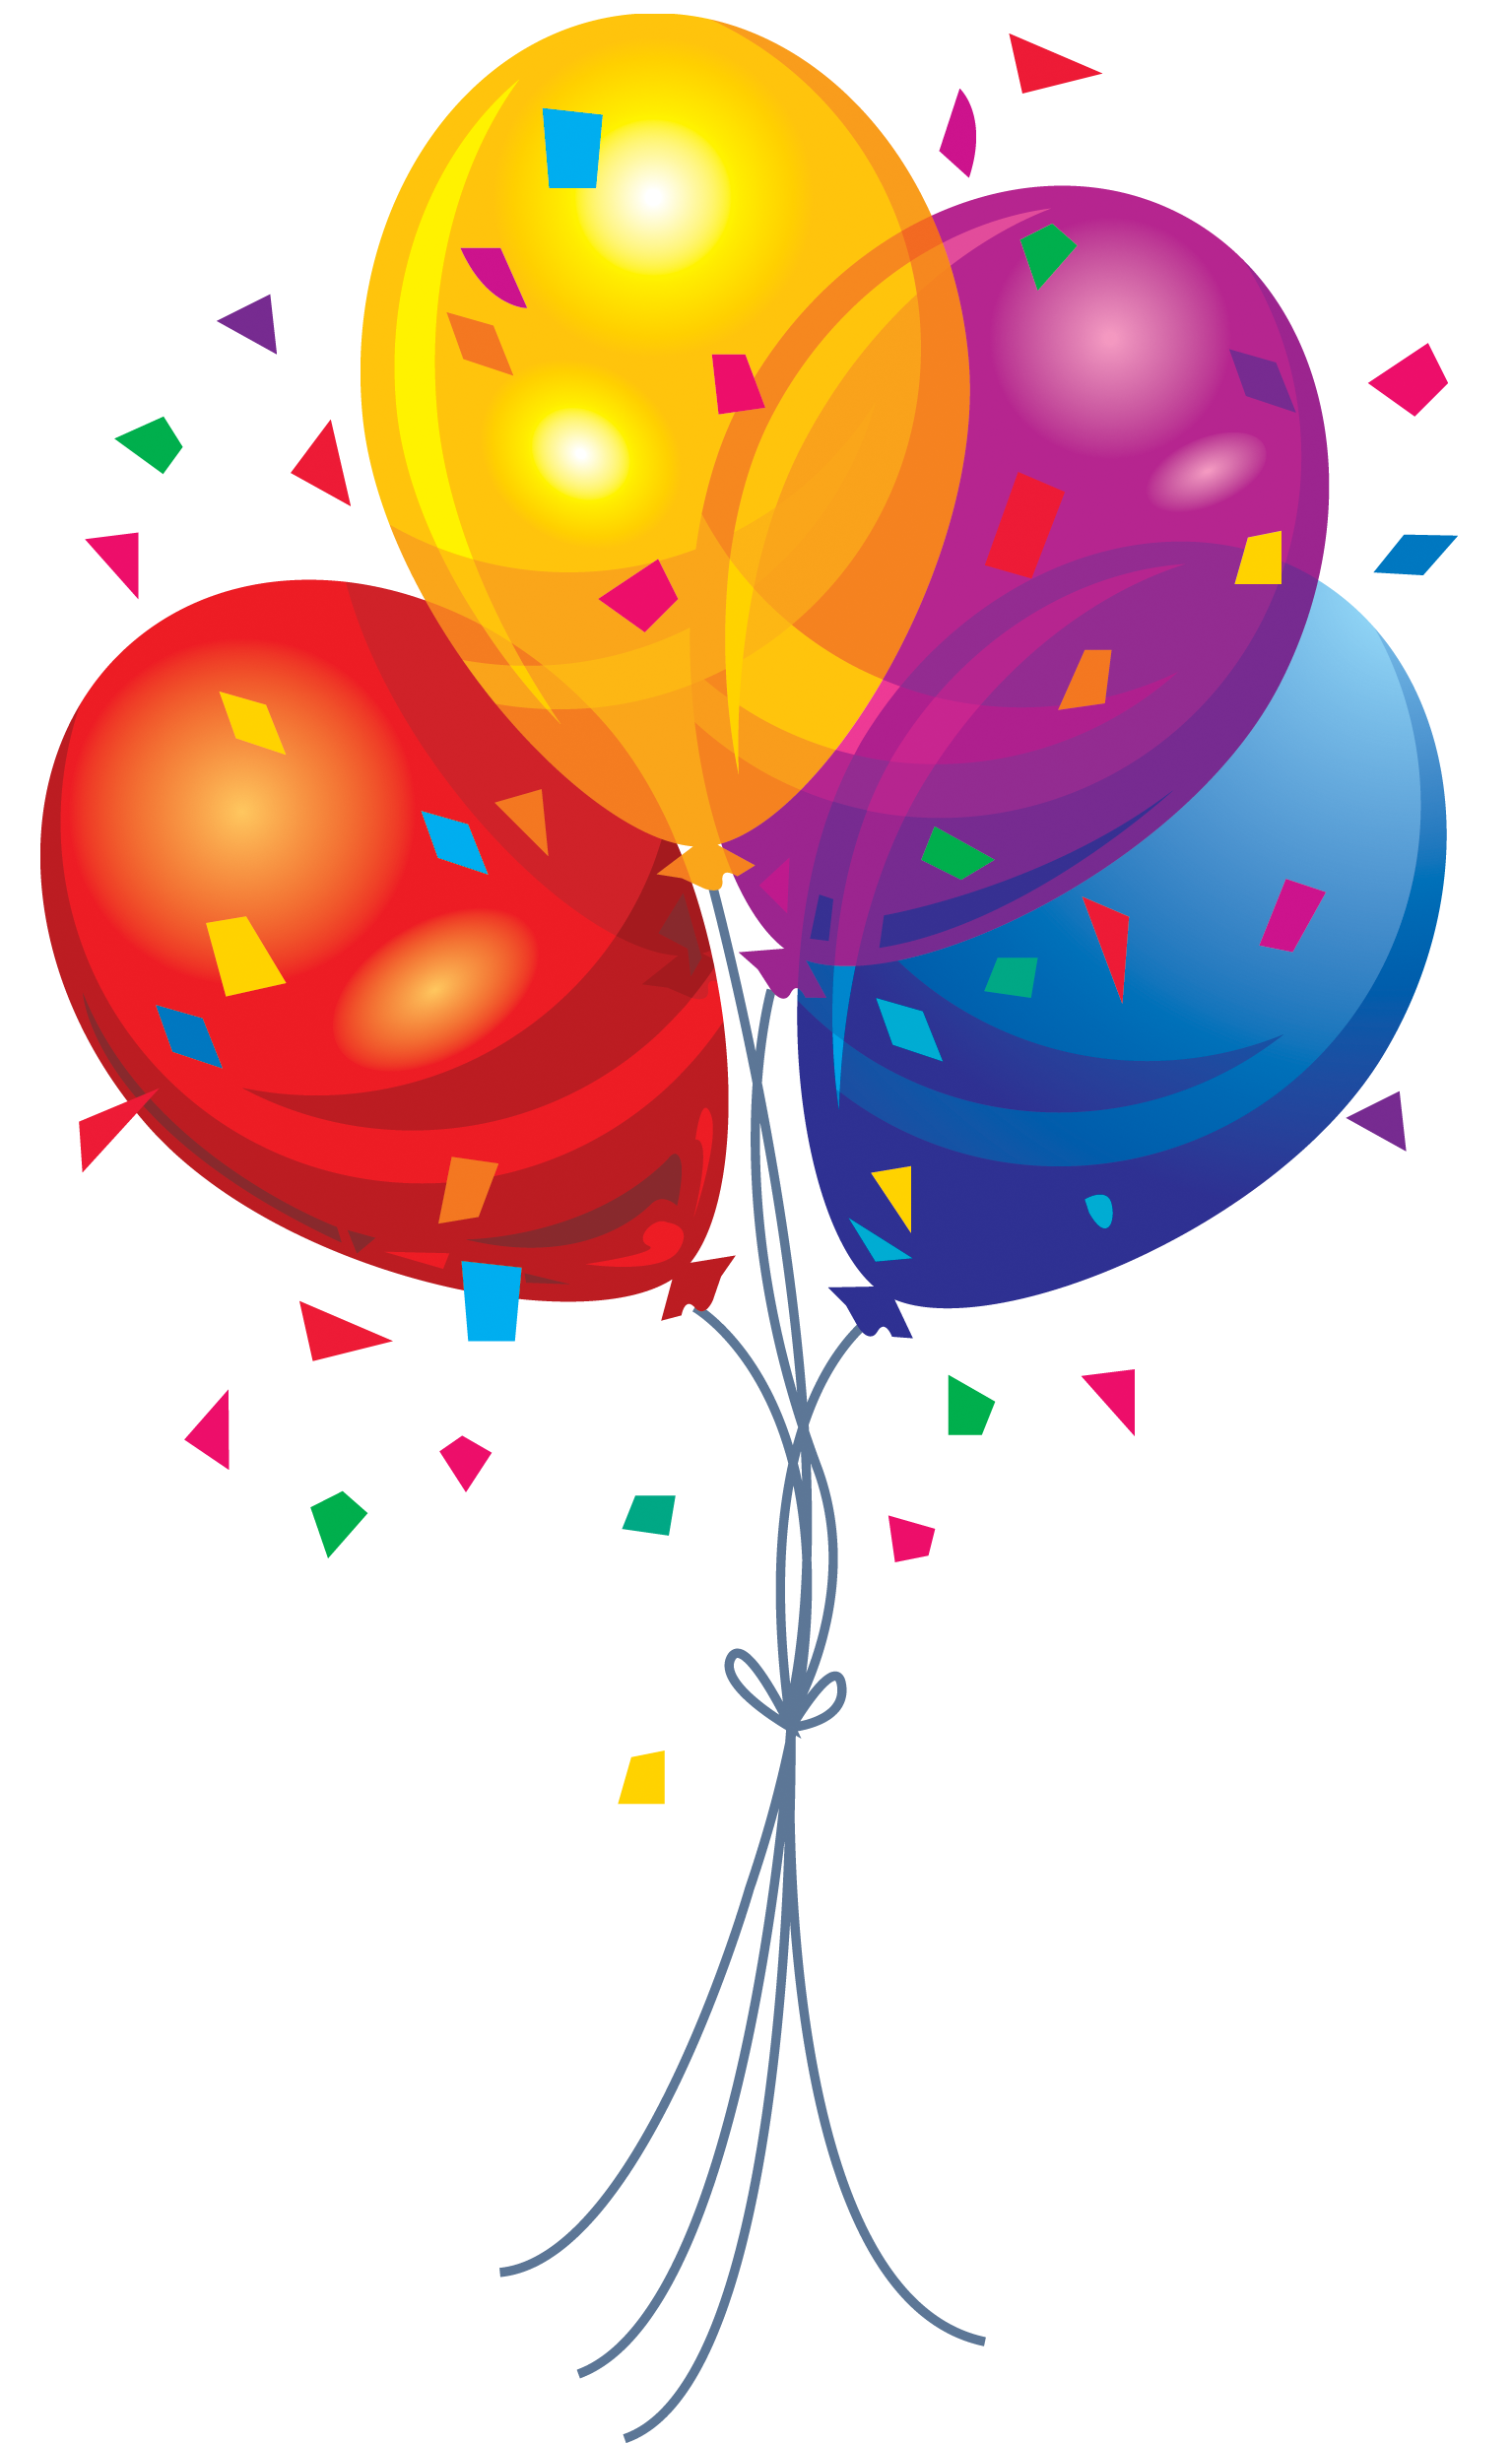 Balloon greetings pinterest happy. Globos dibujo png banner library library